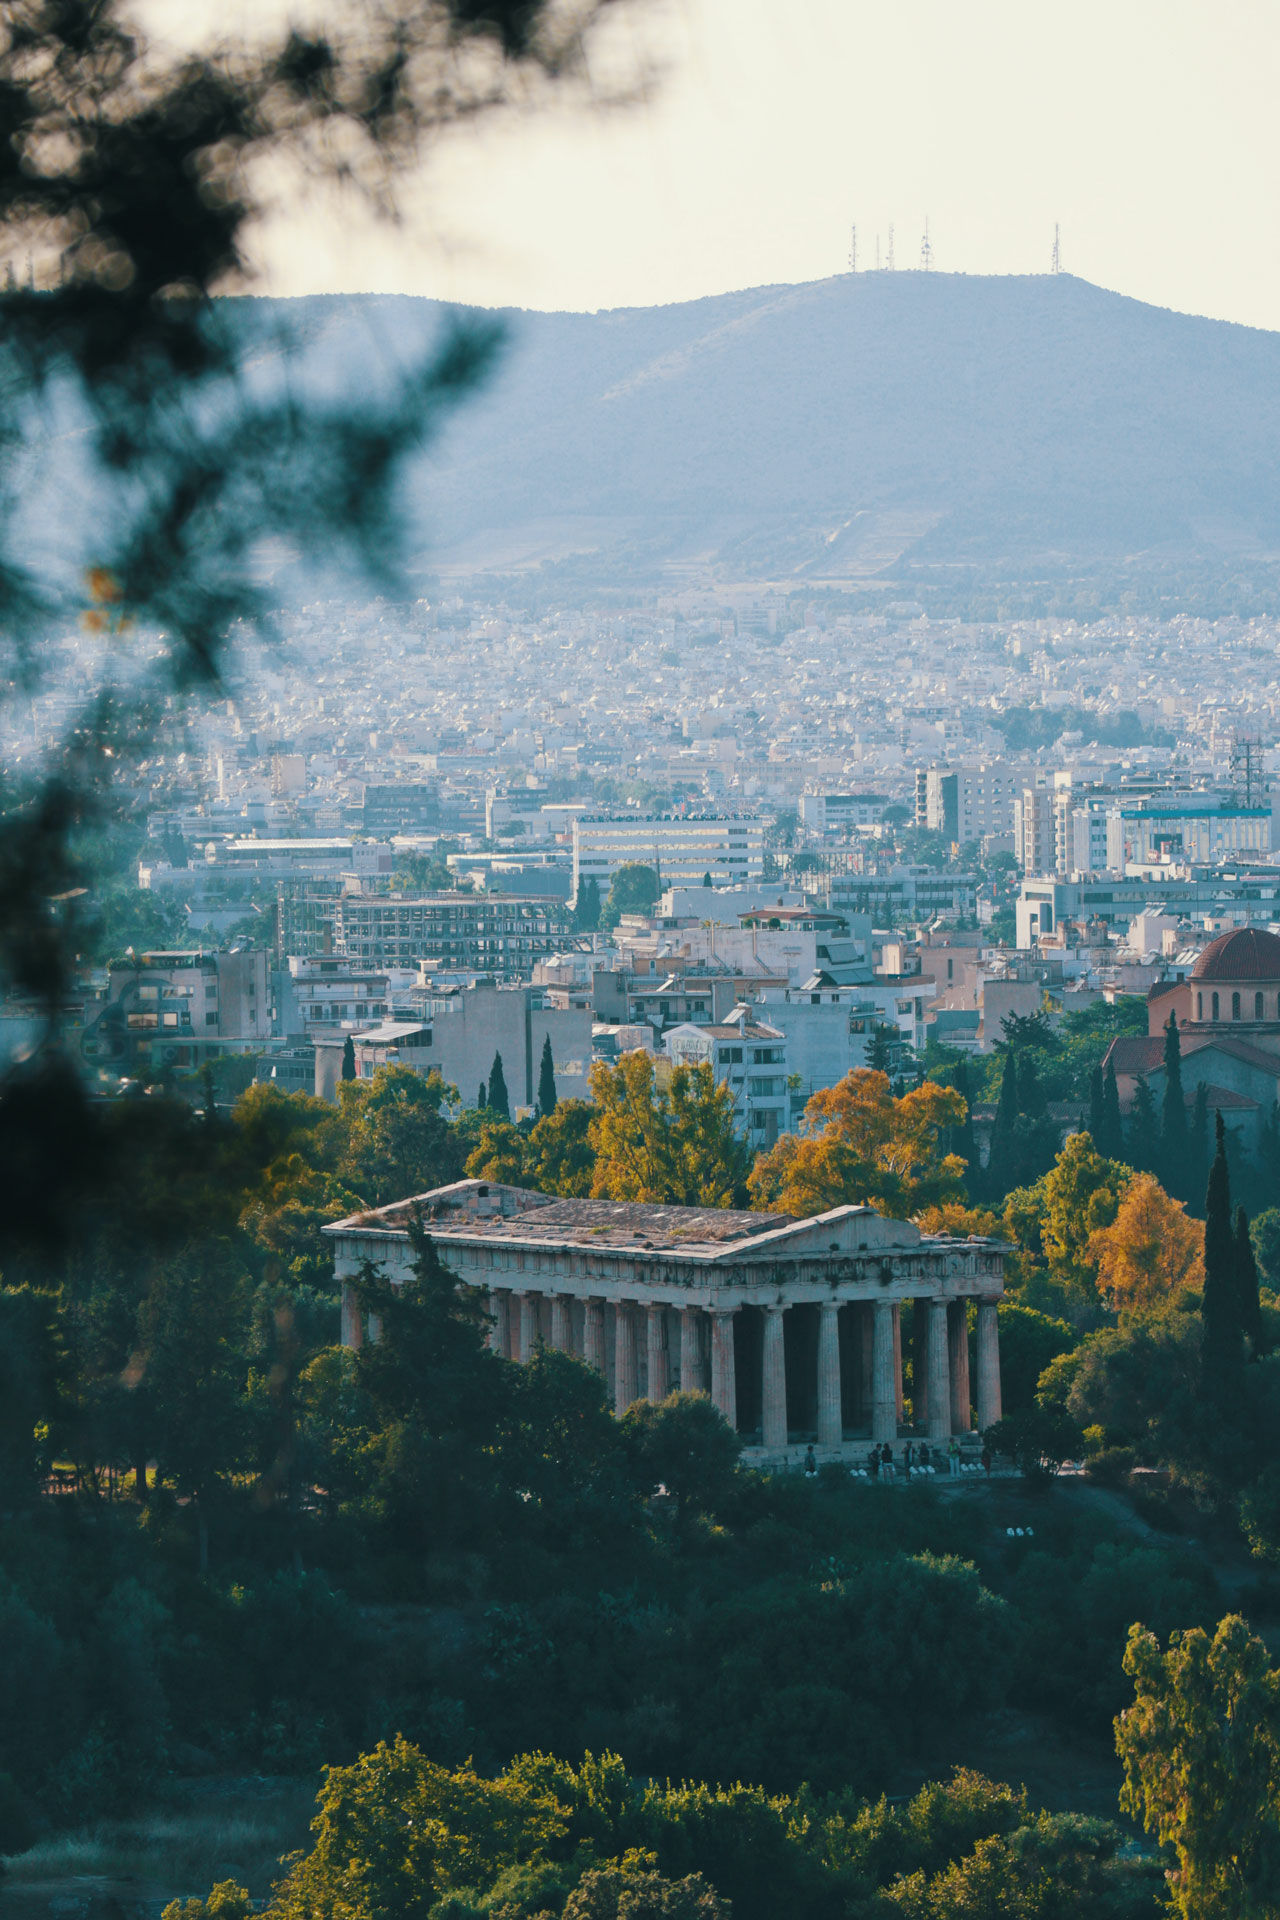 The Temple of Hephaestus was built in the 5th century BC as a dedication to the god of fire